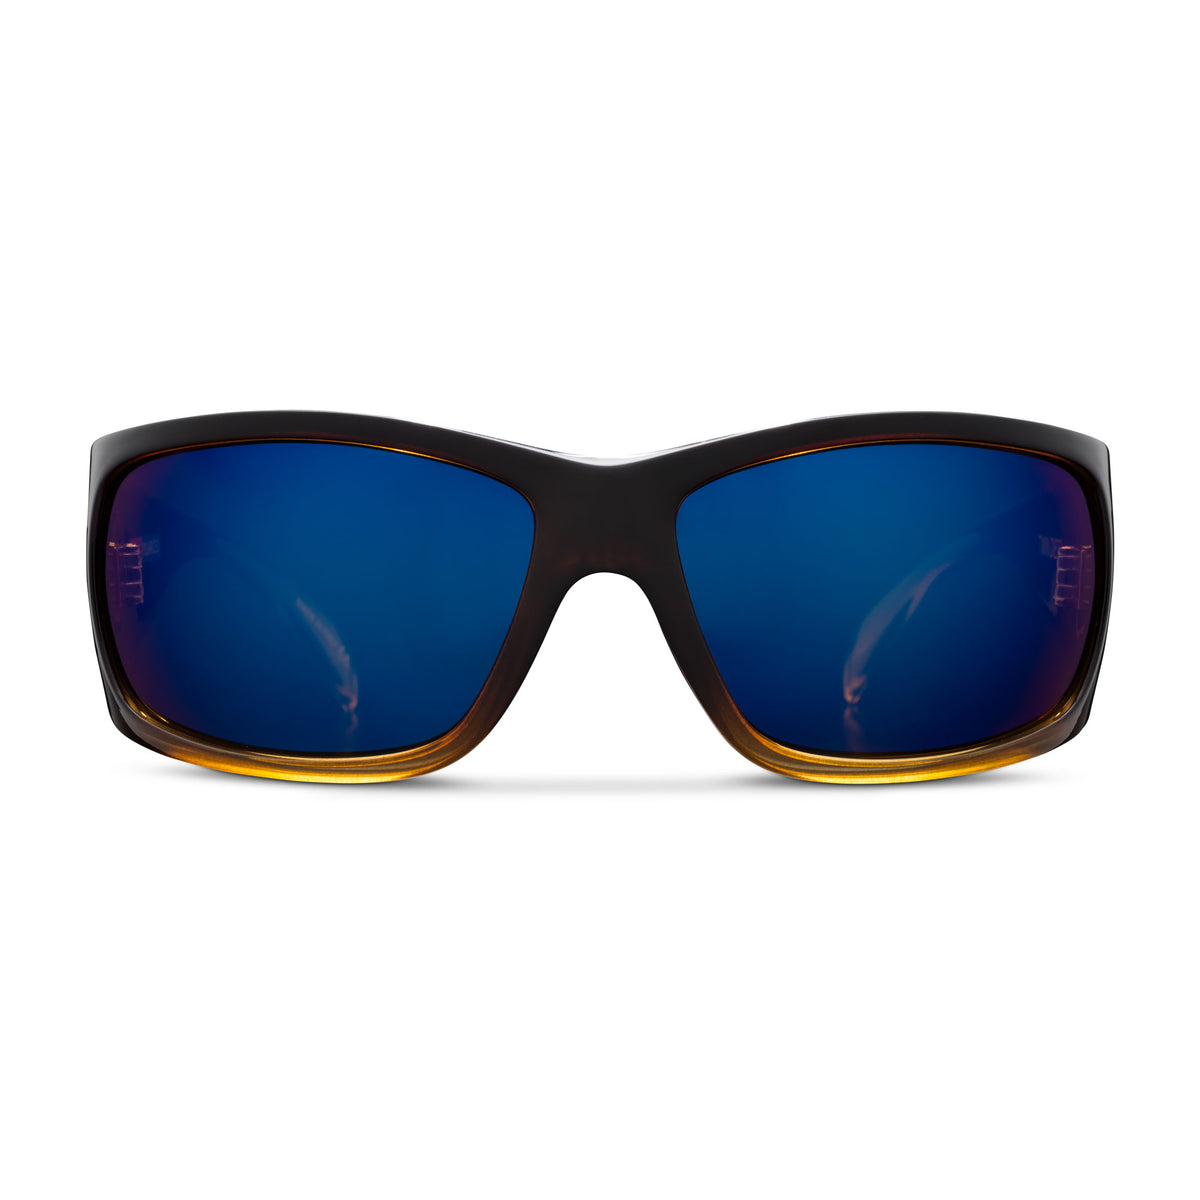 Twin Diesel - Polarized XP-700™ Polycarbonate Lens Big Image - 2